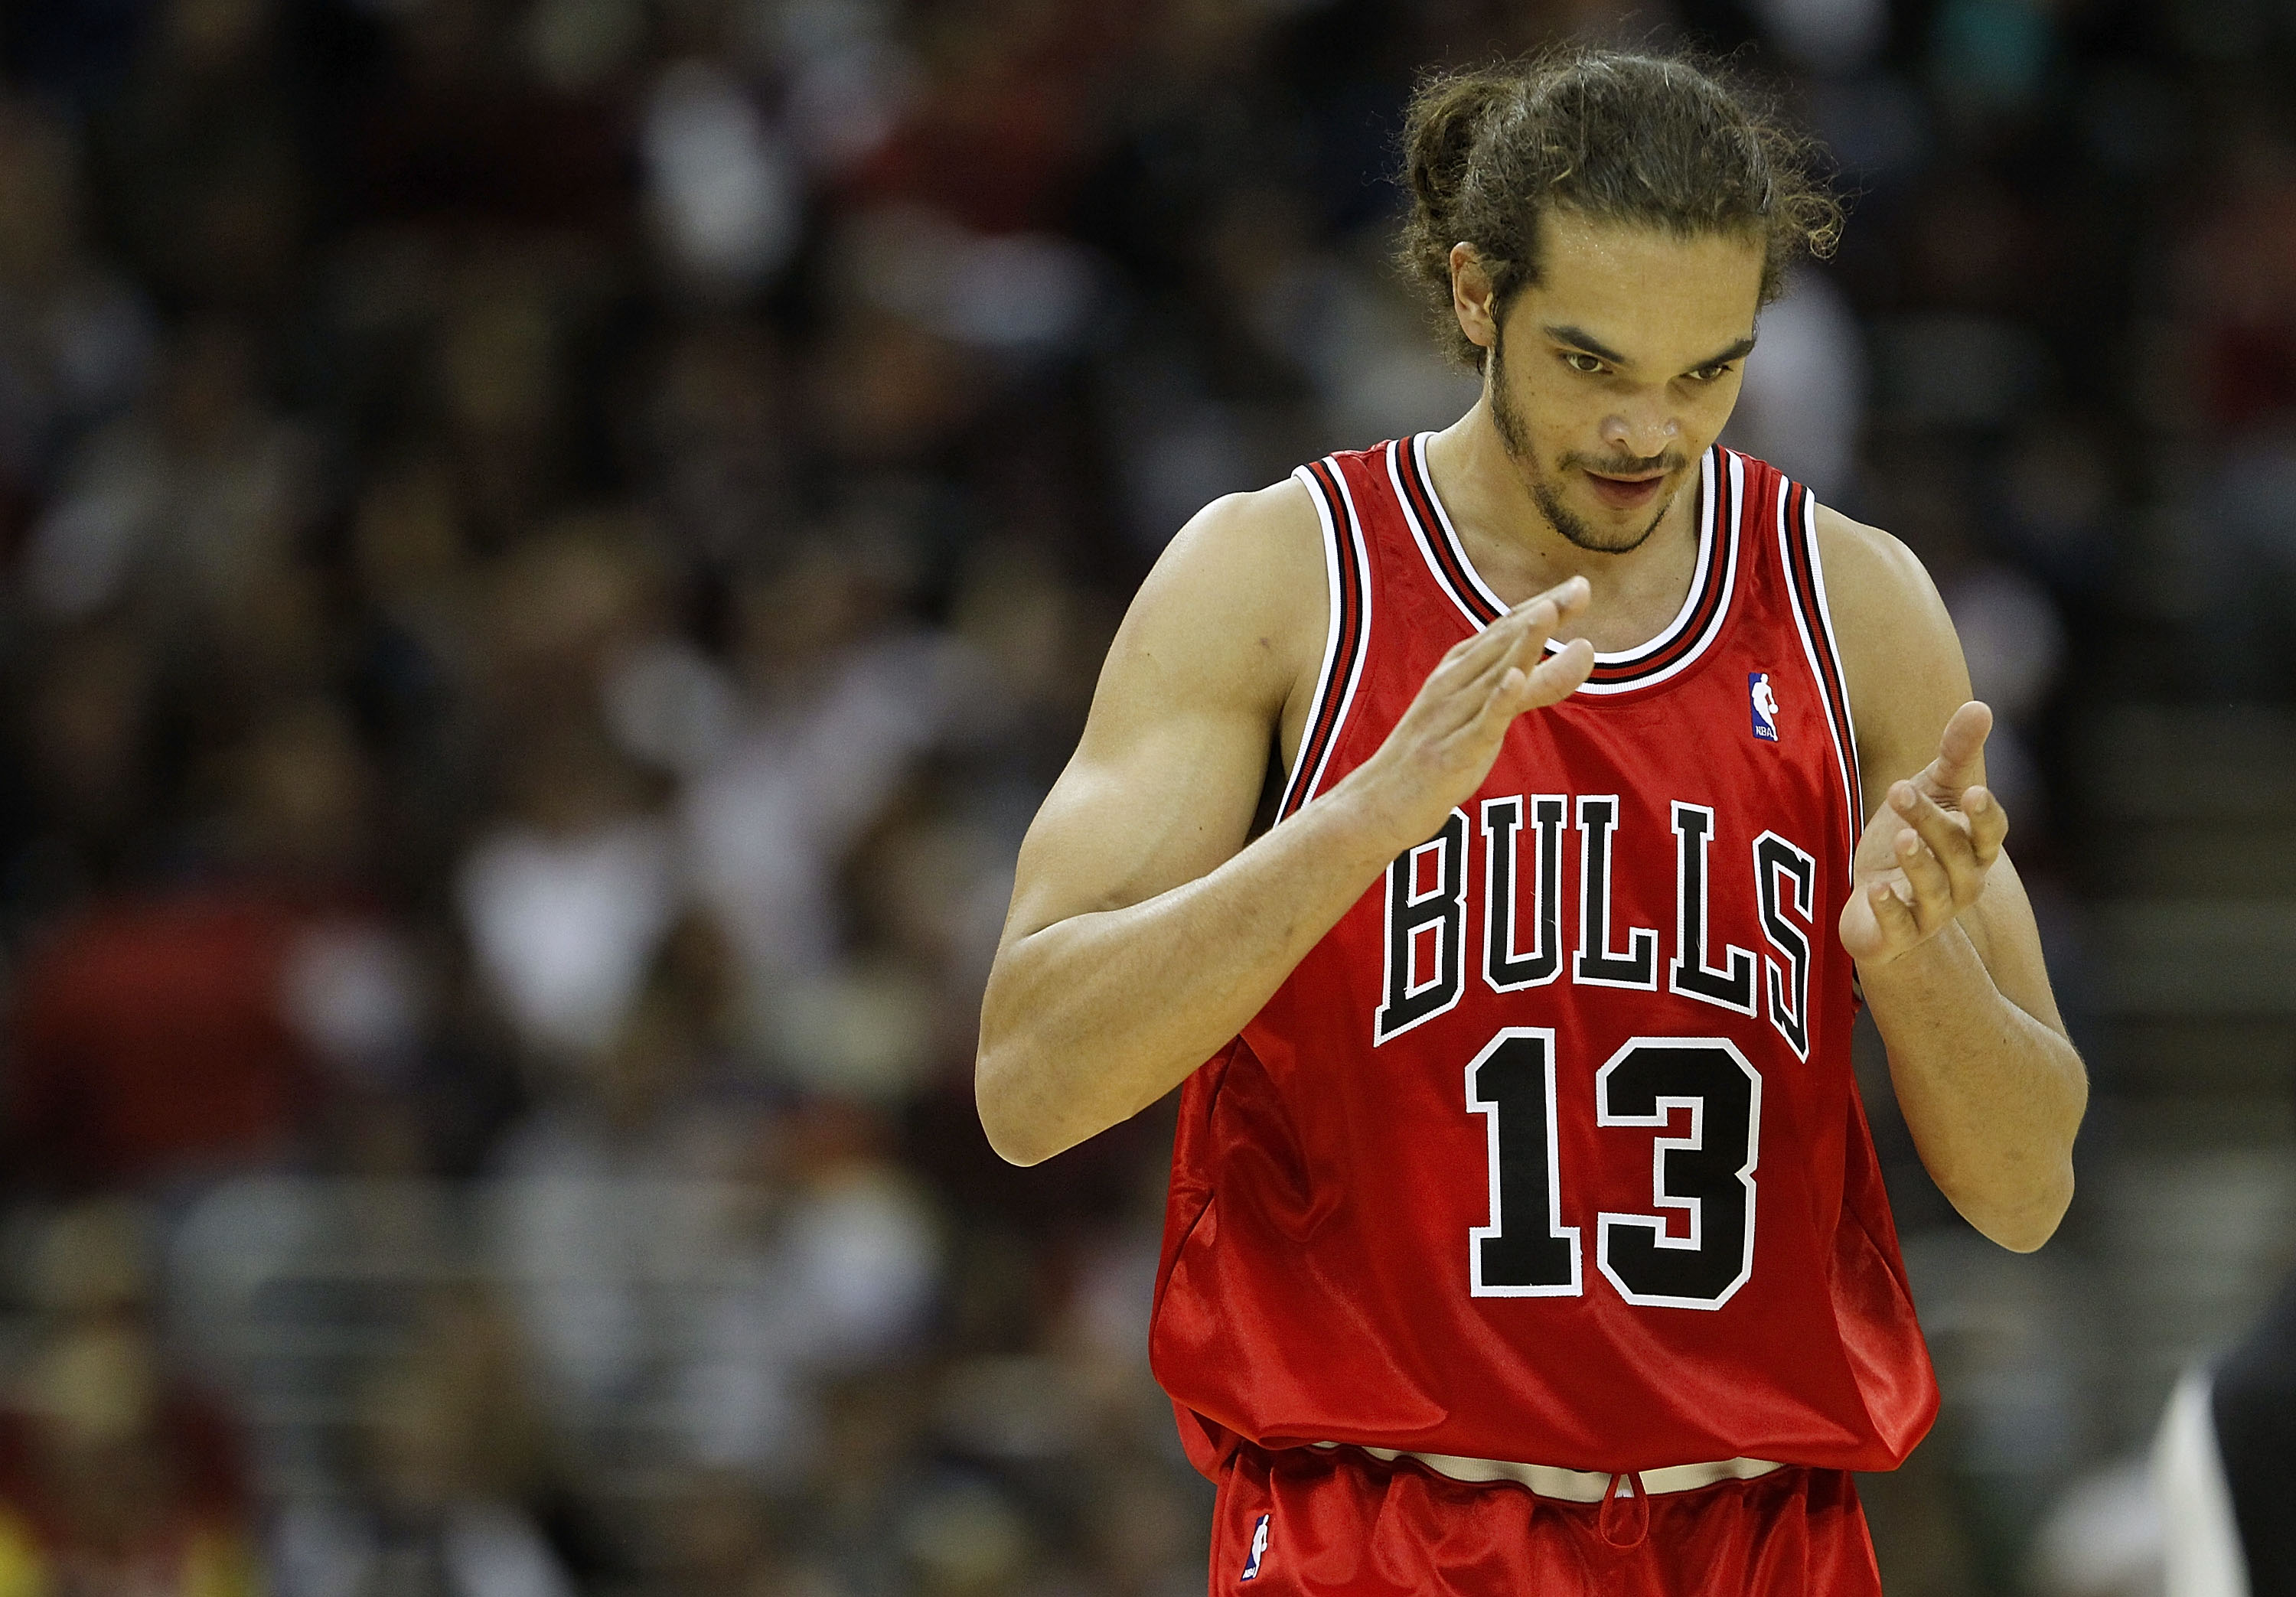 CLEVELAND - APRIL 19:  Joakim Noah #13  of the Chicago Bulls reacts after making a first quarter basket against the Cleveland Cavaliers in Game Two of the Eastern Conference Quarterfinals during the 2010 NBA Playoffs at Quicken Loans Arena on April 19, 20